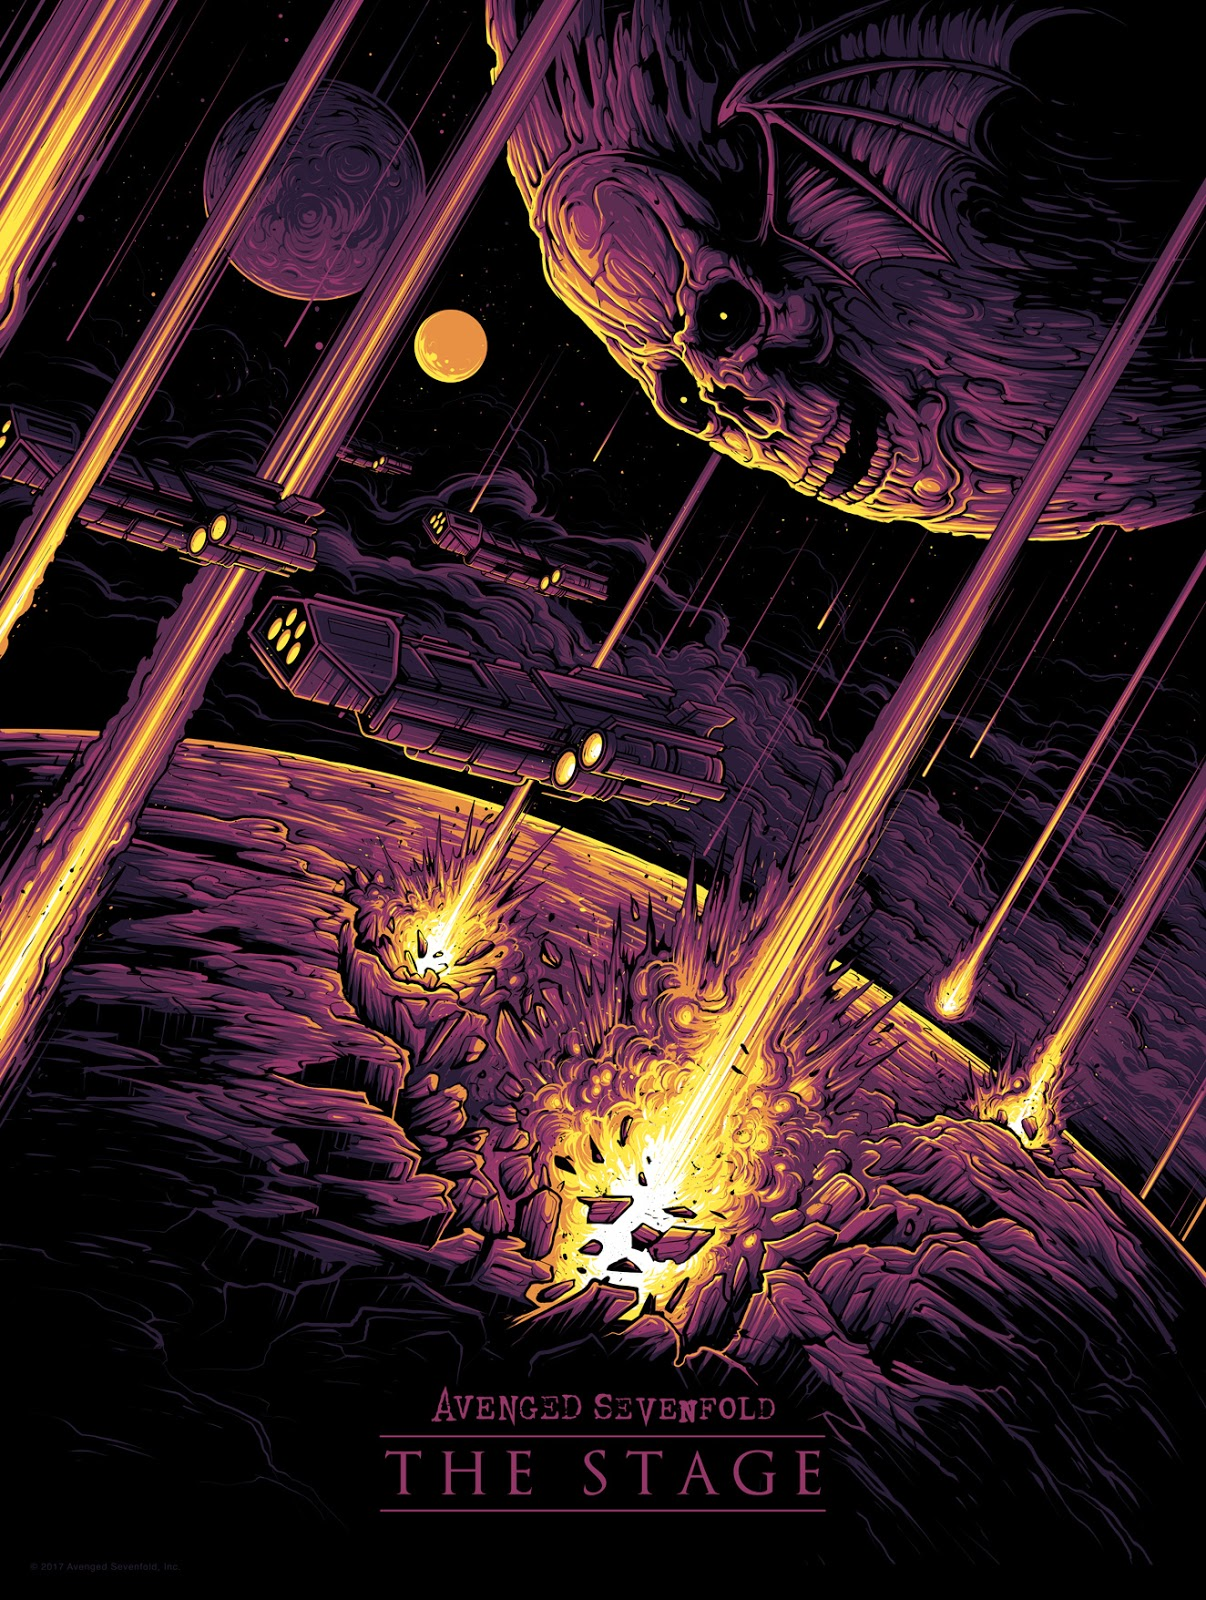 Dan Mumford The Stage Avenged Sevenfold Poster Release Exclusive First Look